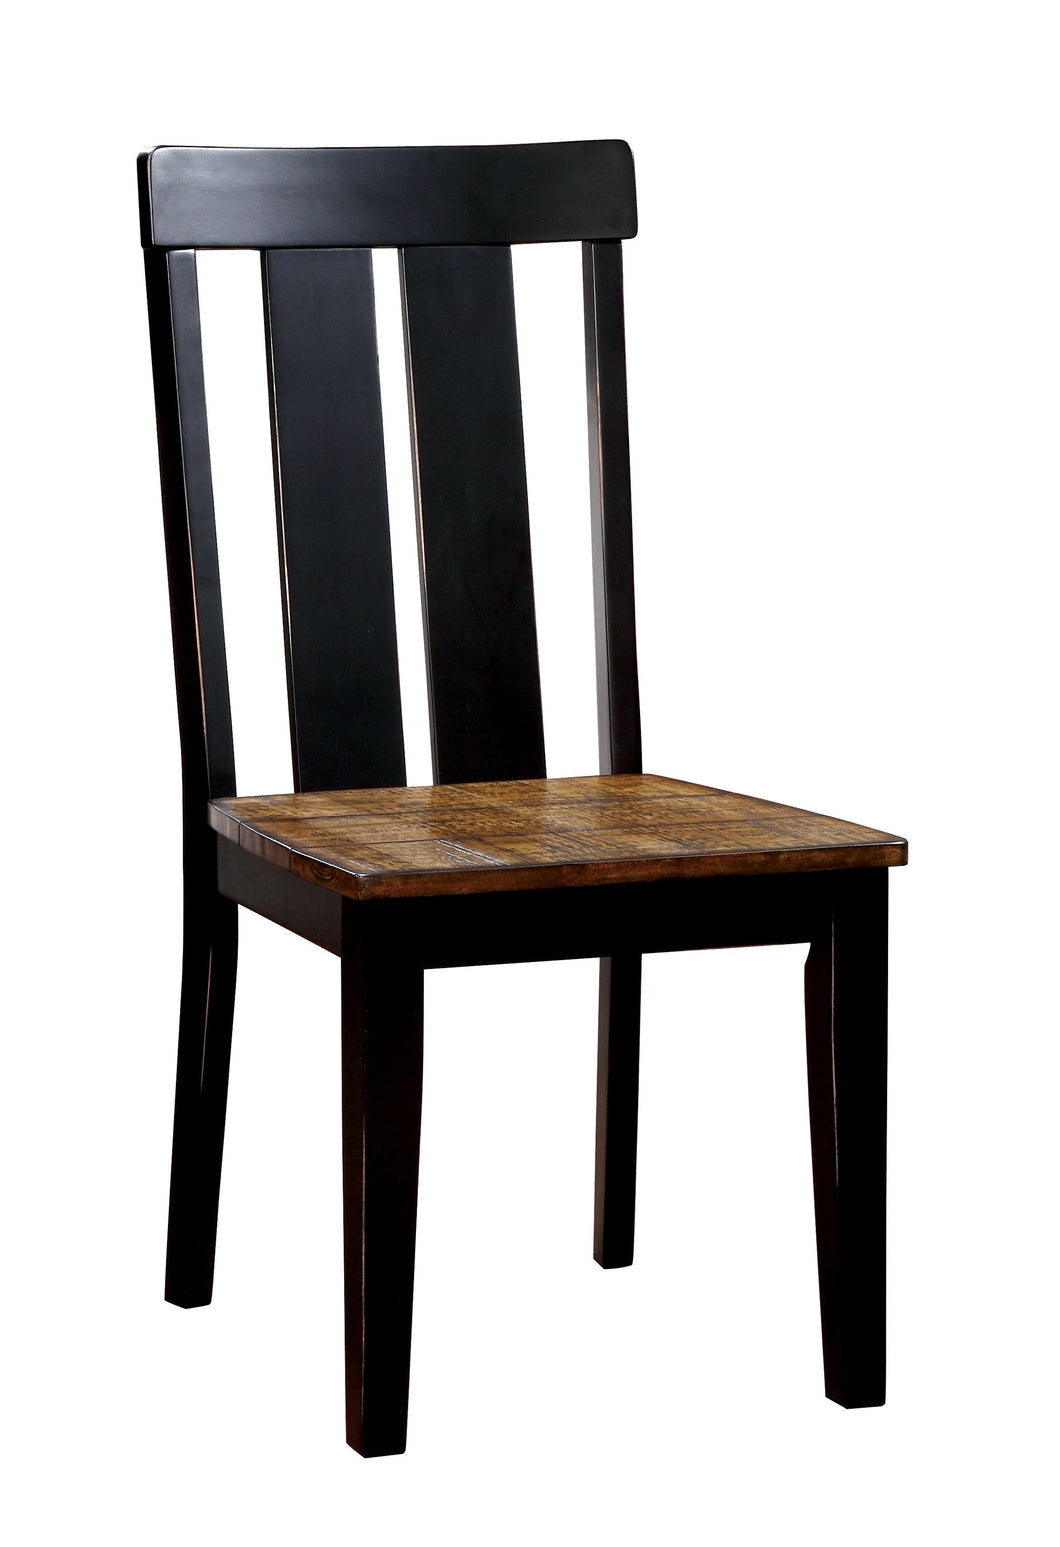 Gillies Farmhouse Two-Tone Antique Oak and Black Dining Chair (Set of 2)